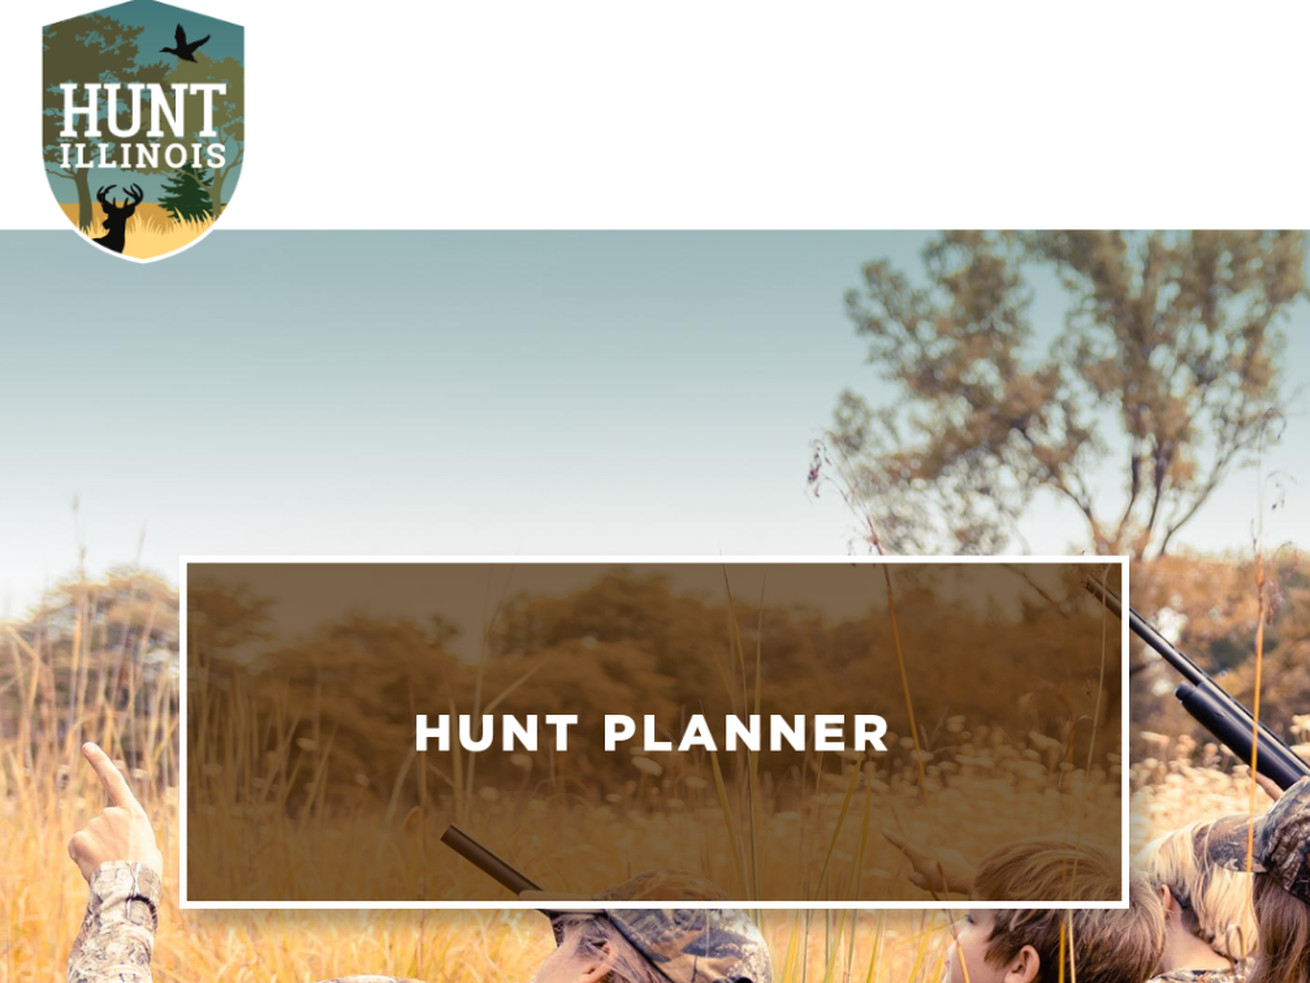 A screen shot of the new Hunt Illinois website. Credit: Dale Bowman